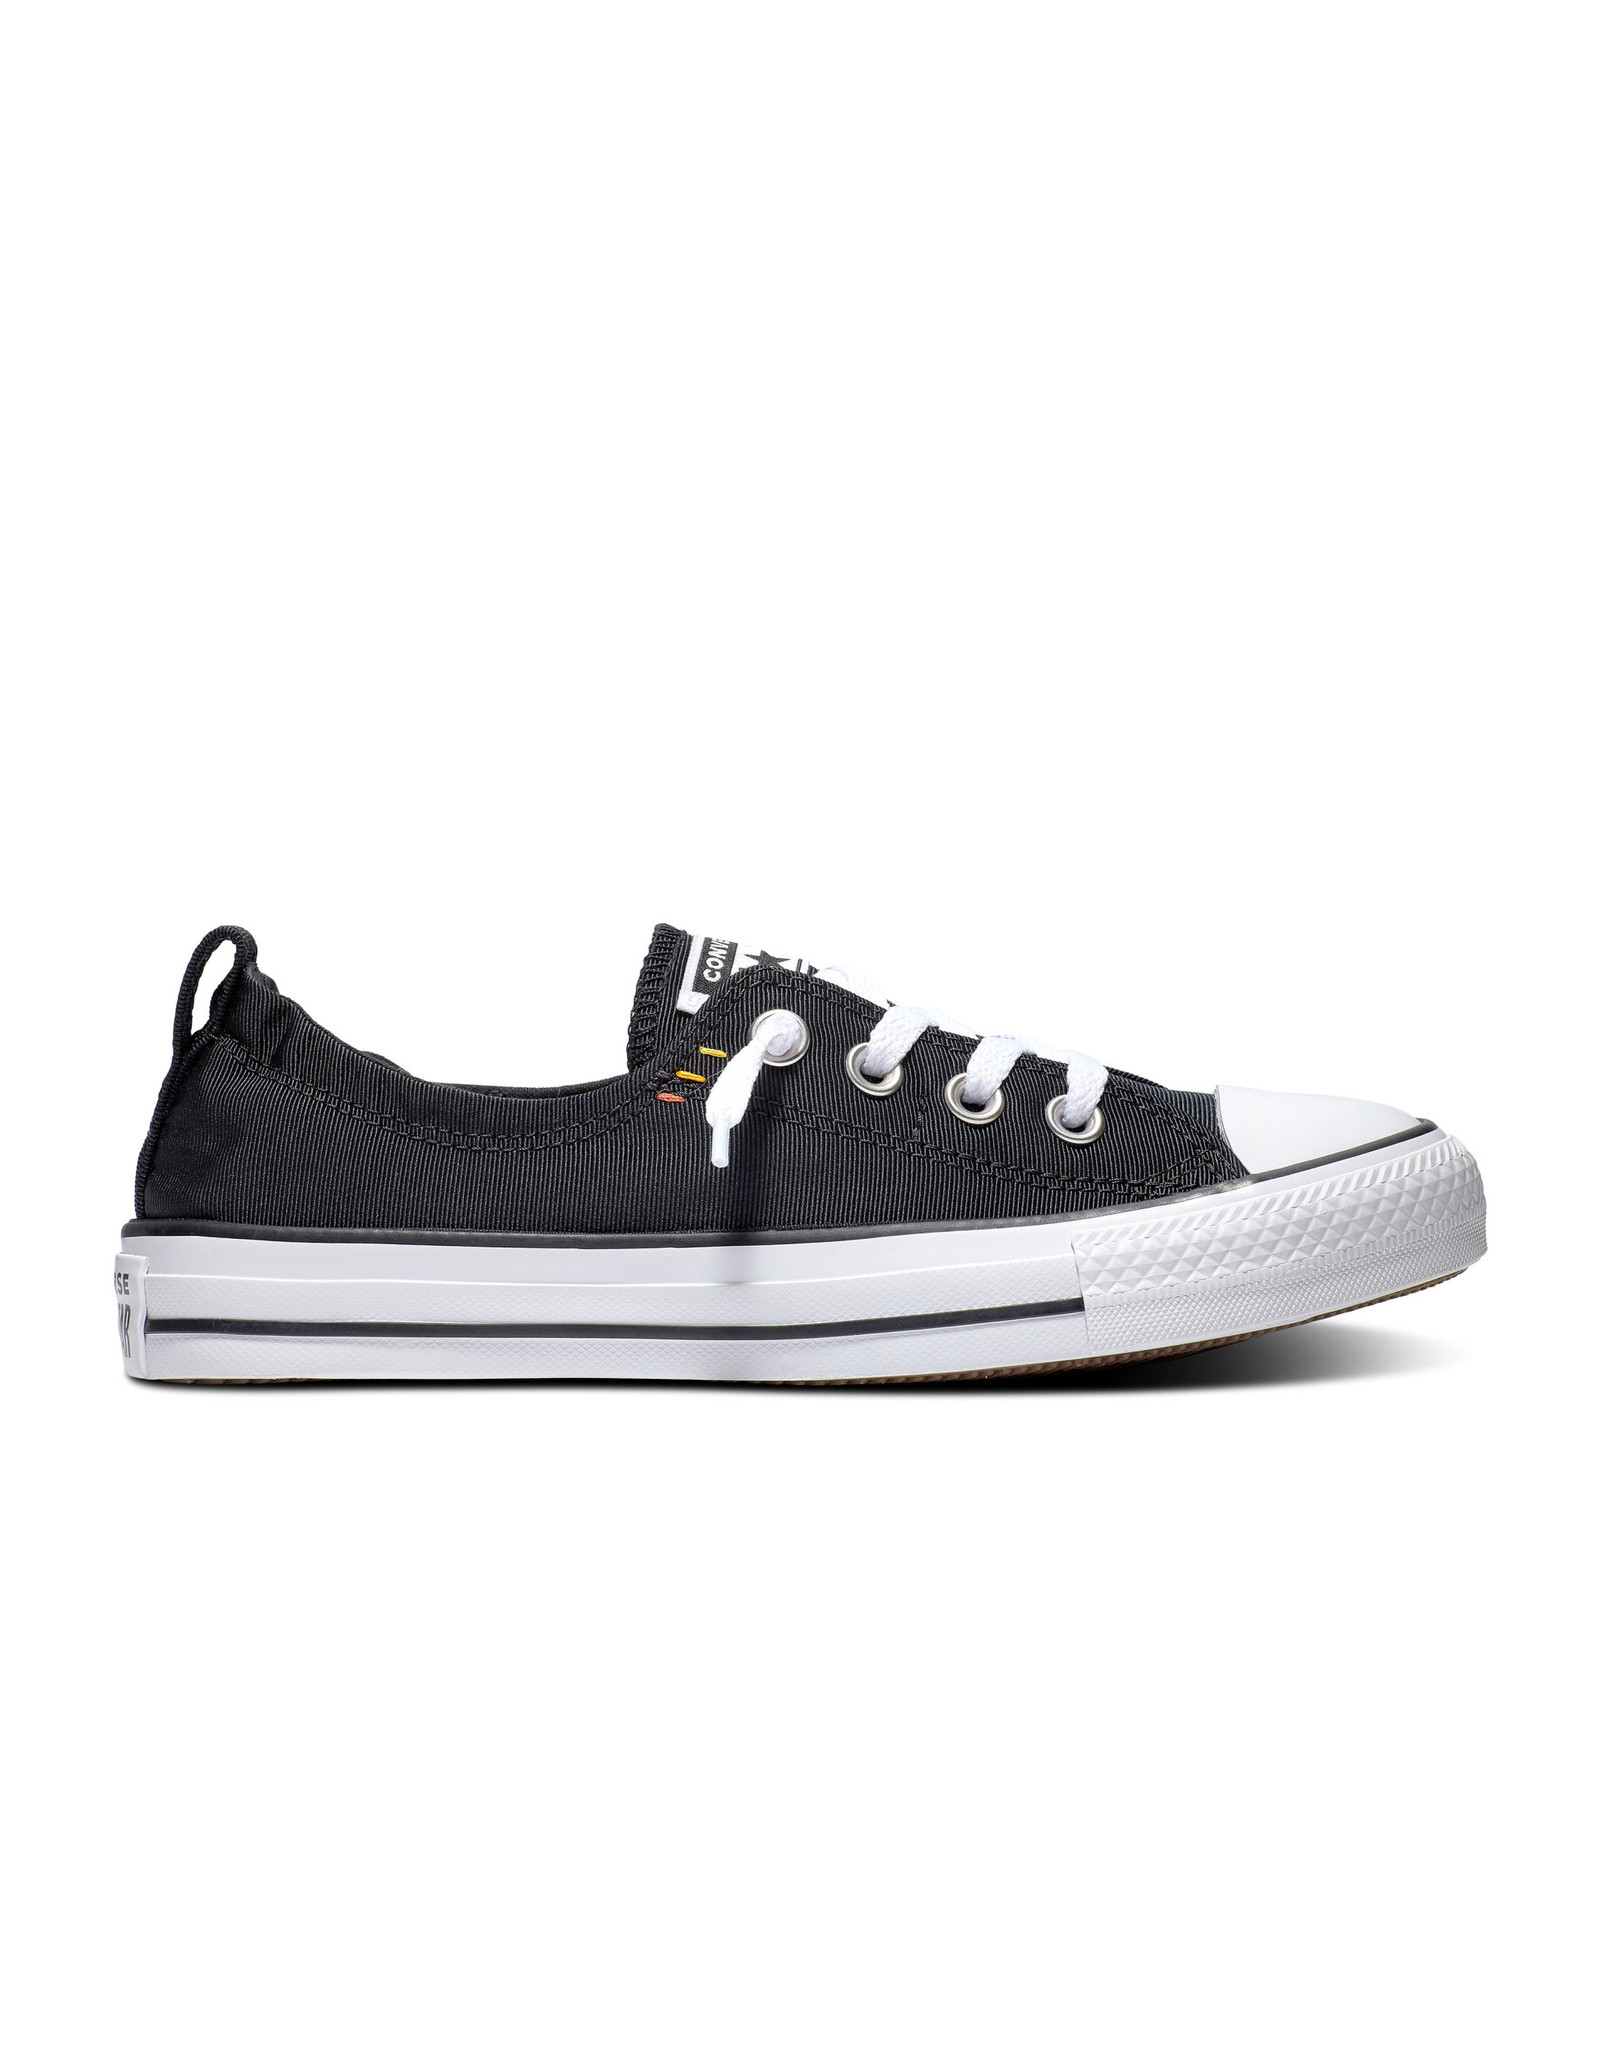 CONVERSE CHUCK TAYLOR ALL STAR SHORELINE SLIP BLACK/WHITE/BLACK C13SSB-565244C